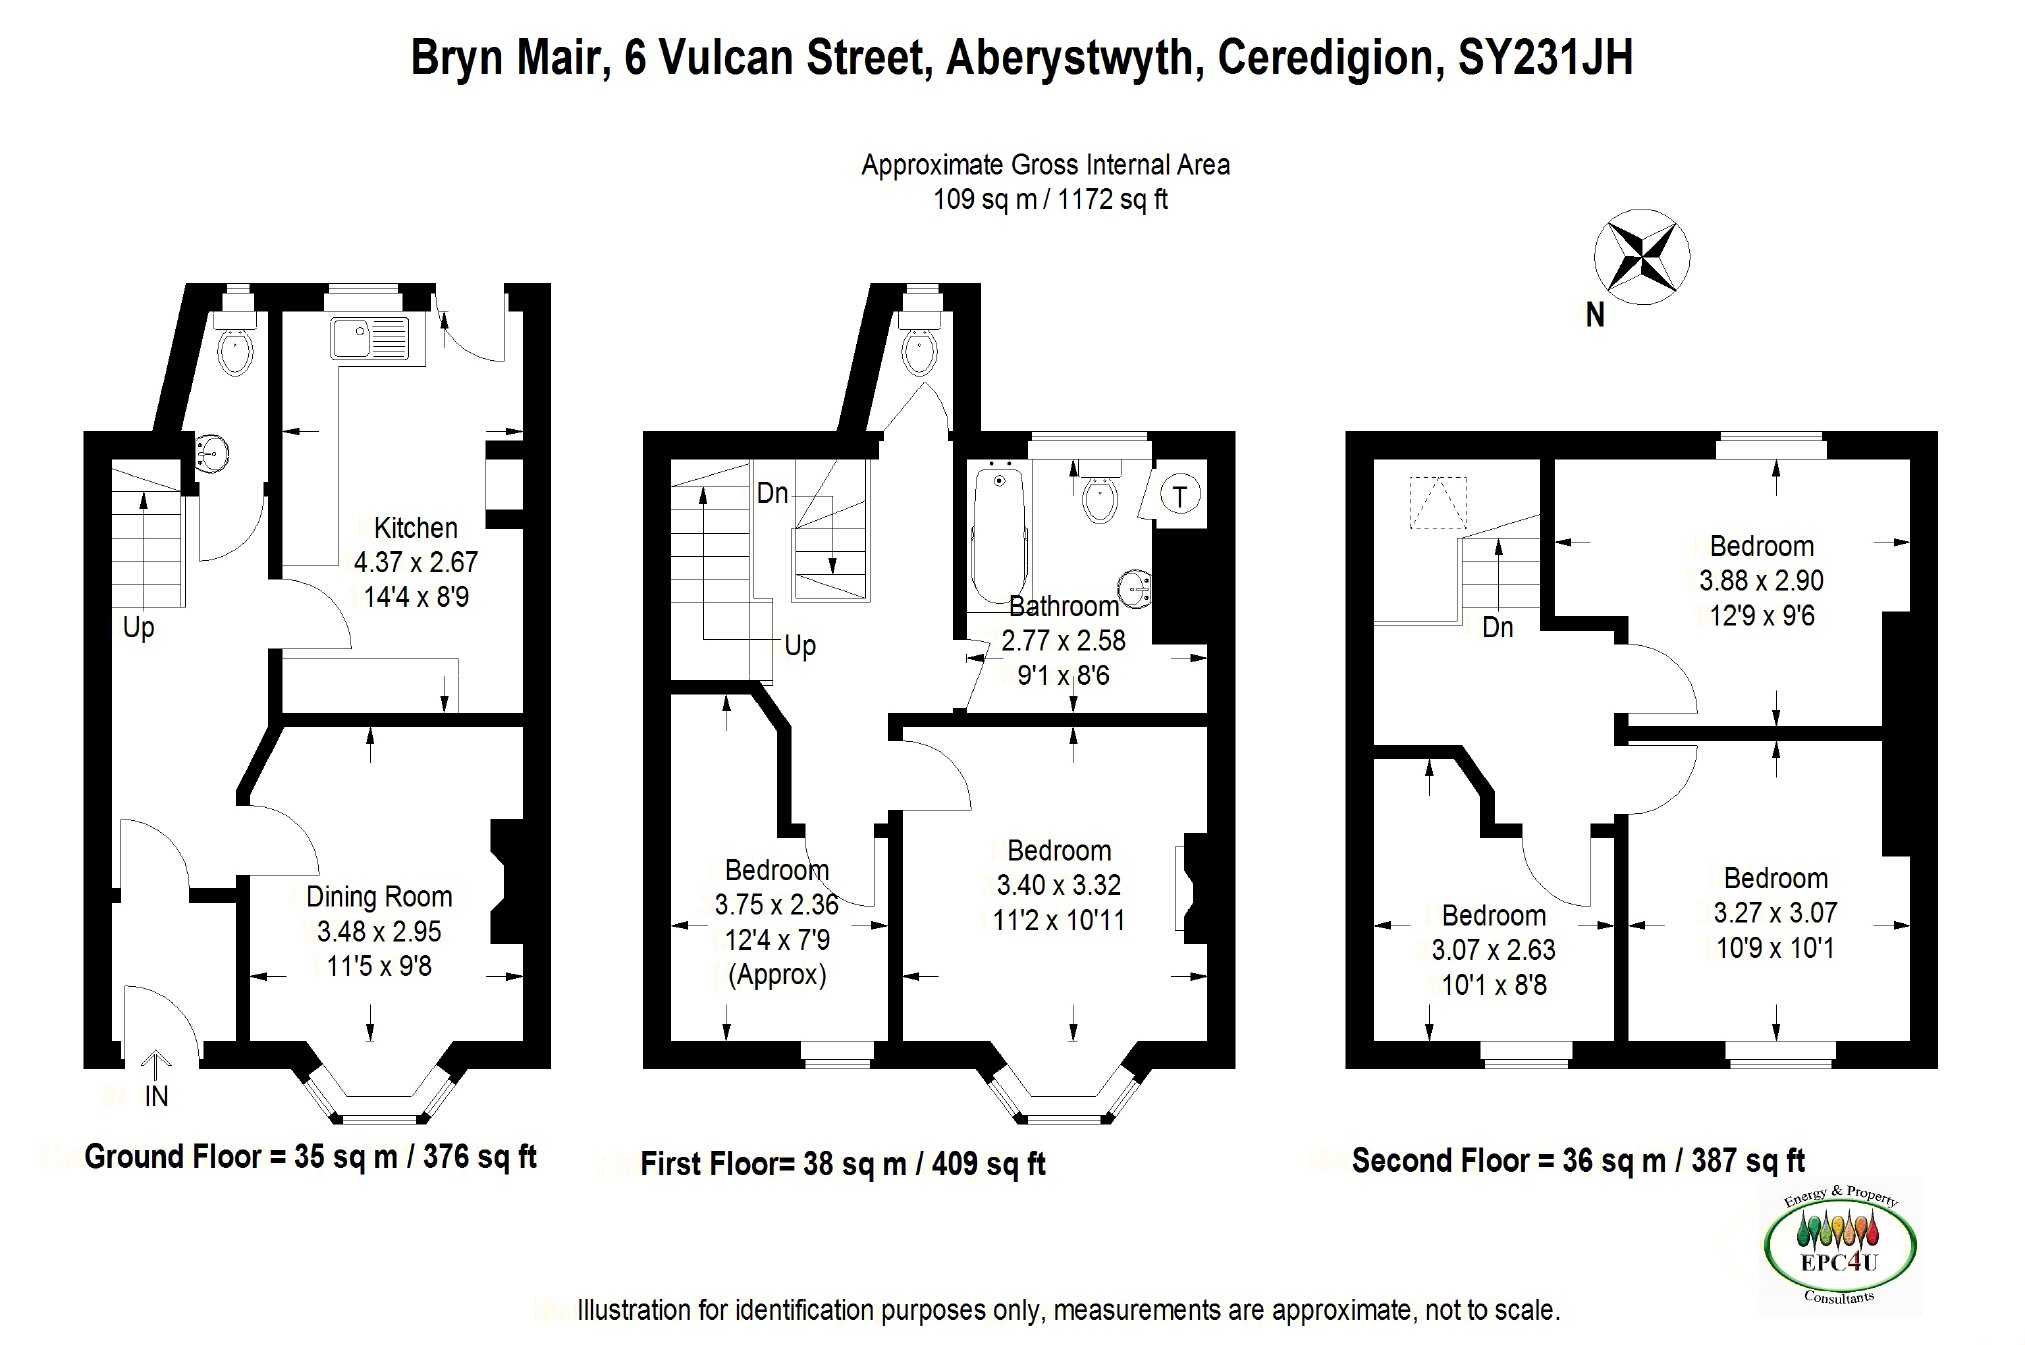 4 bedroom Terraced House for sale in Aberystwyth